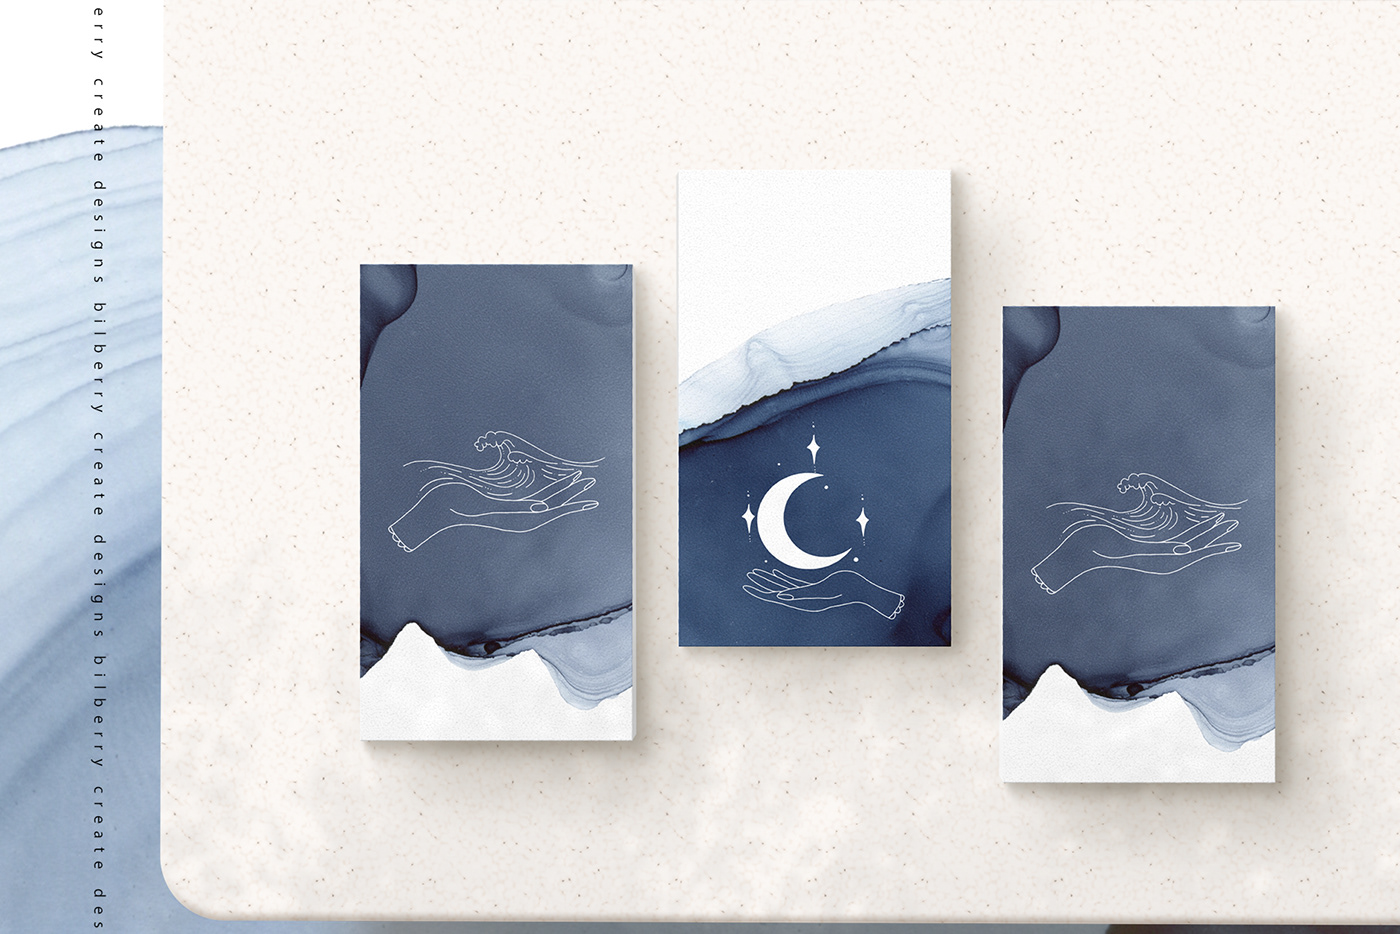 Abstract Art abstract texture handmade ink logo moon texture background  texture set trendy wave